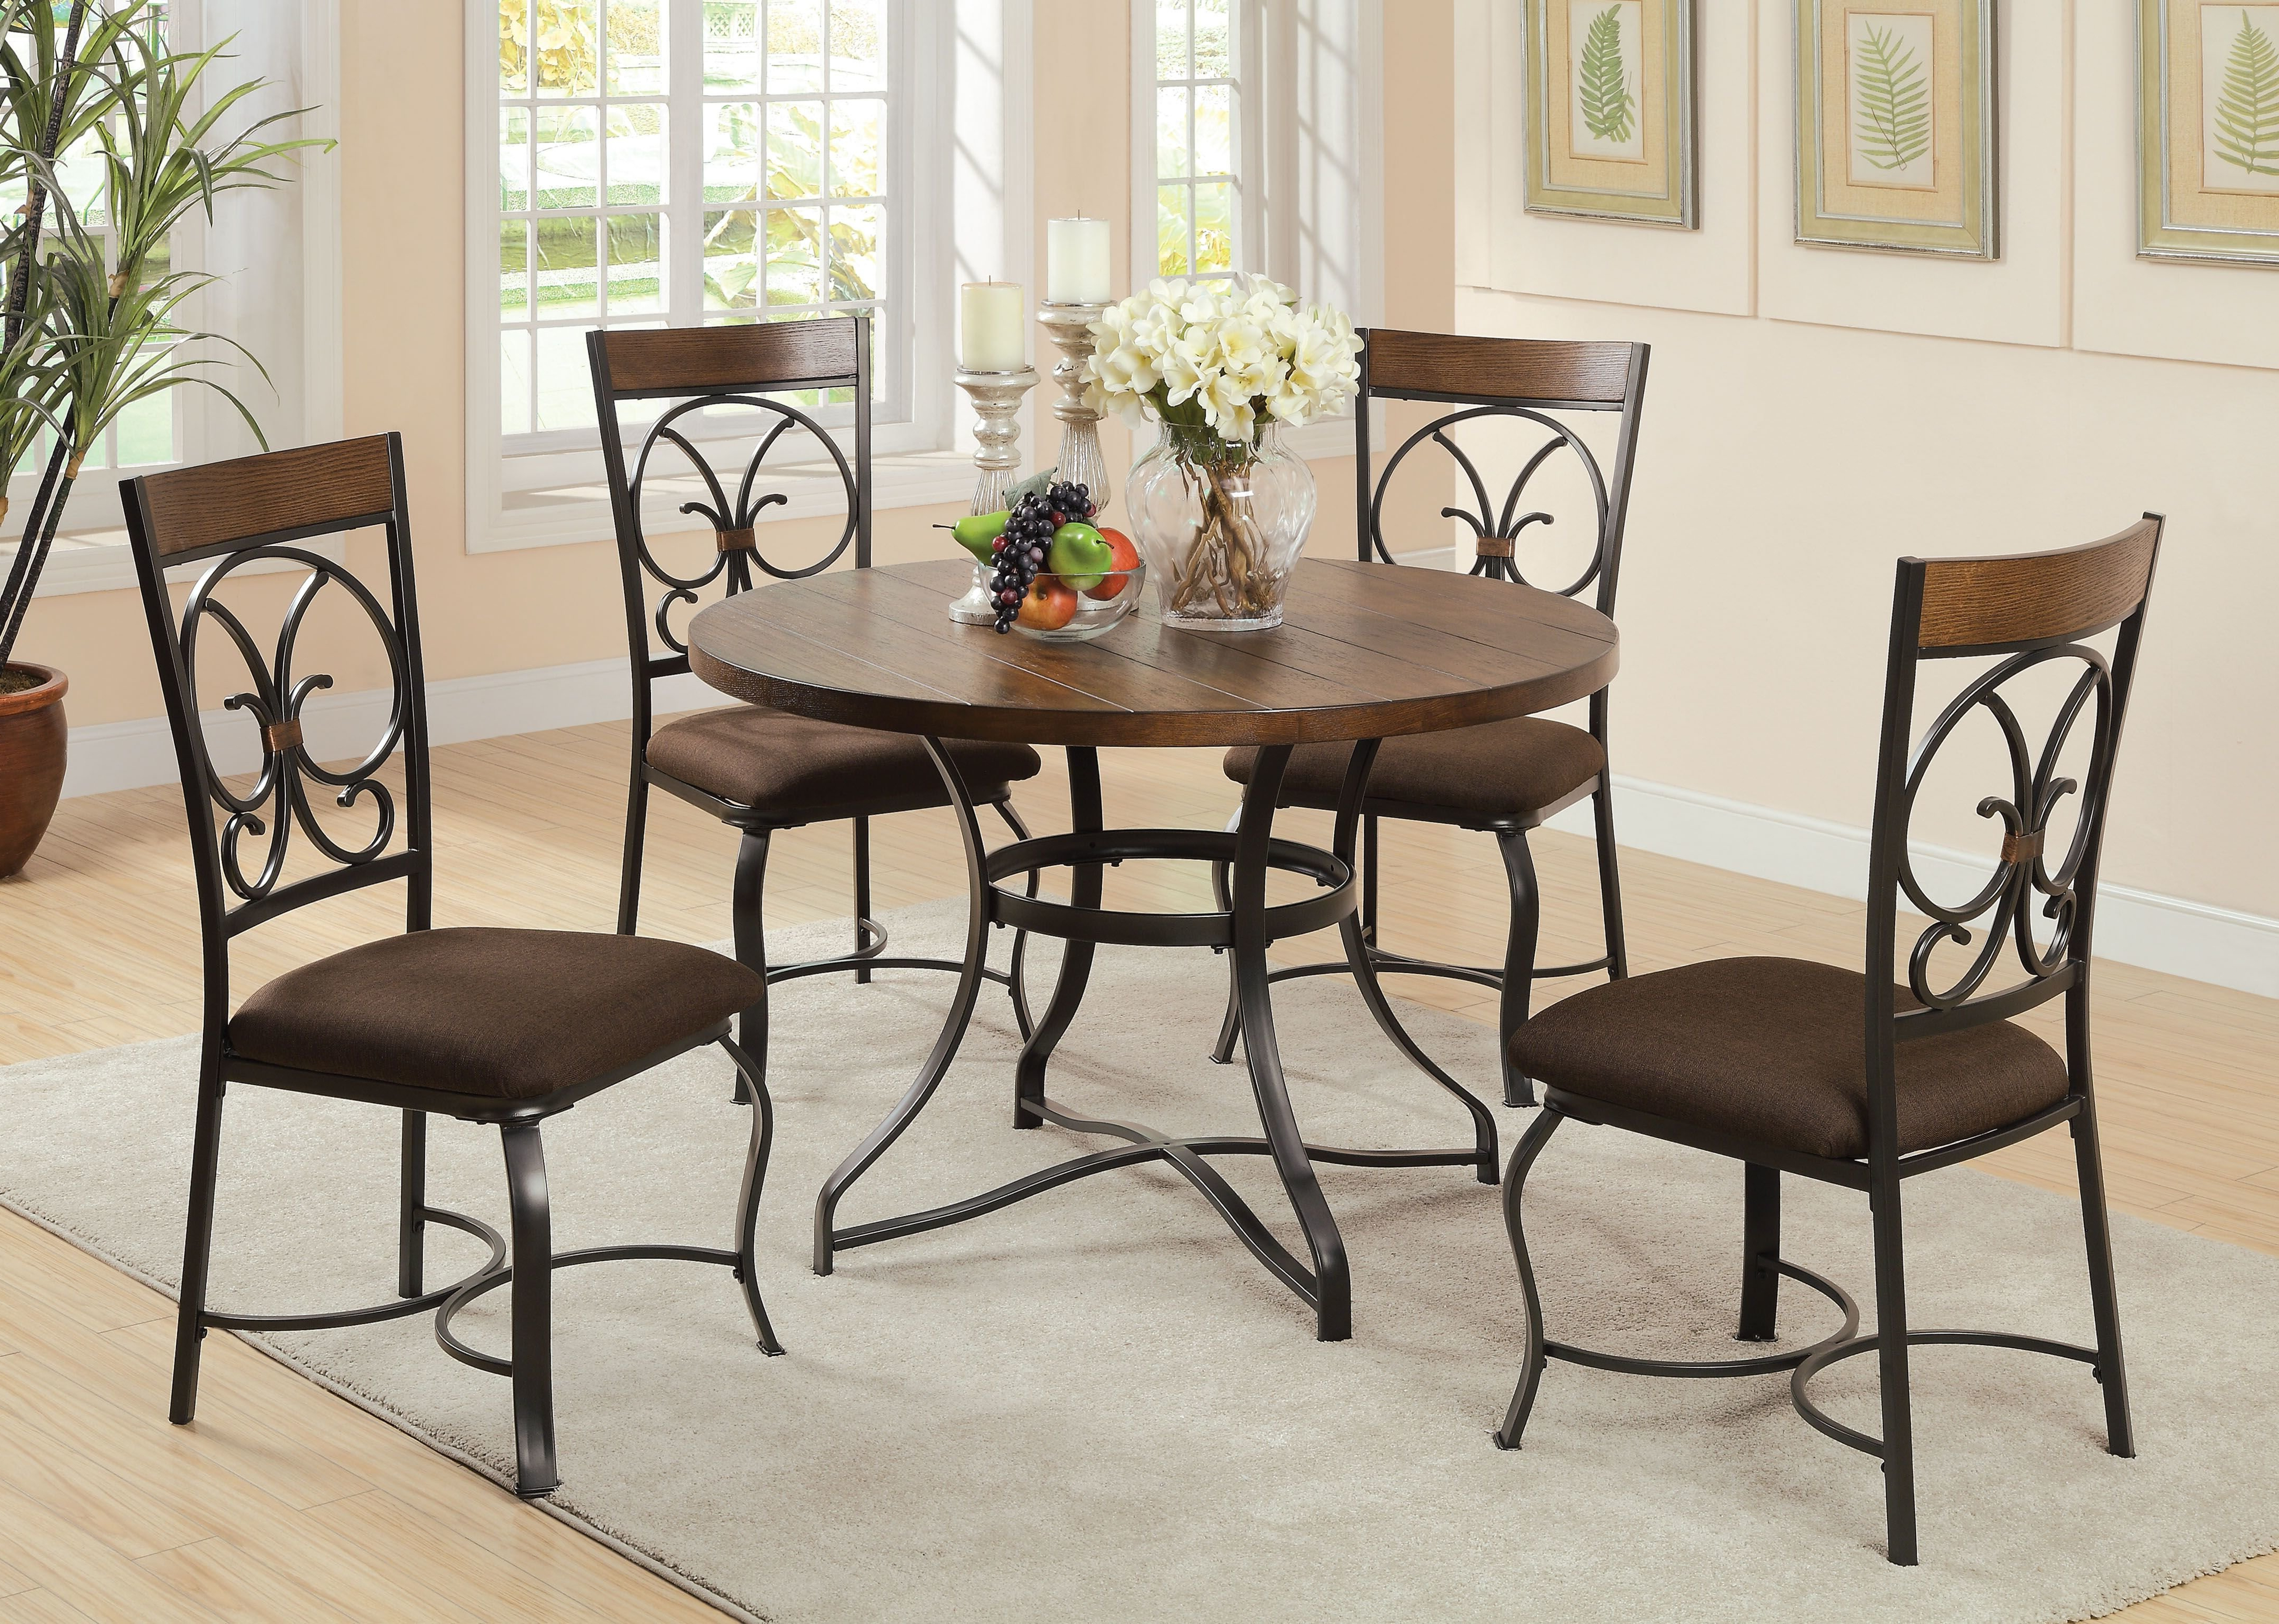 Most Recent Pattonsburg 5 Piece Dining Sets Throughout Fleur De Lis Living Anthonyville 5 Piece Dining Set (View 11 of 25)